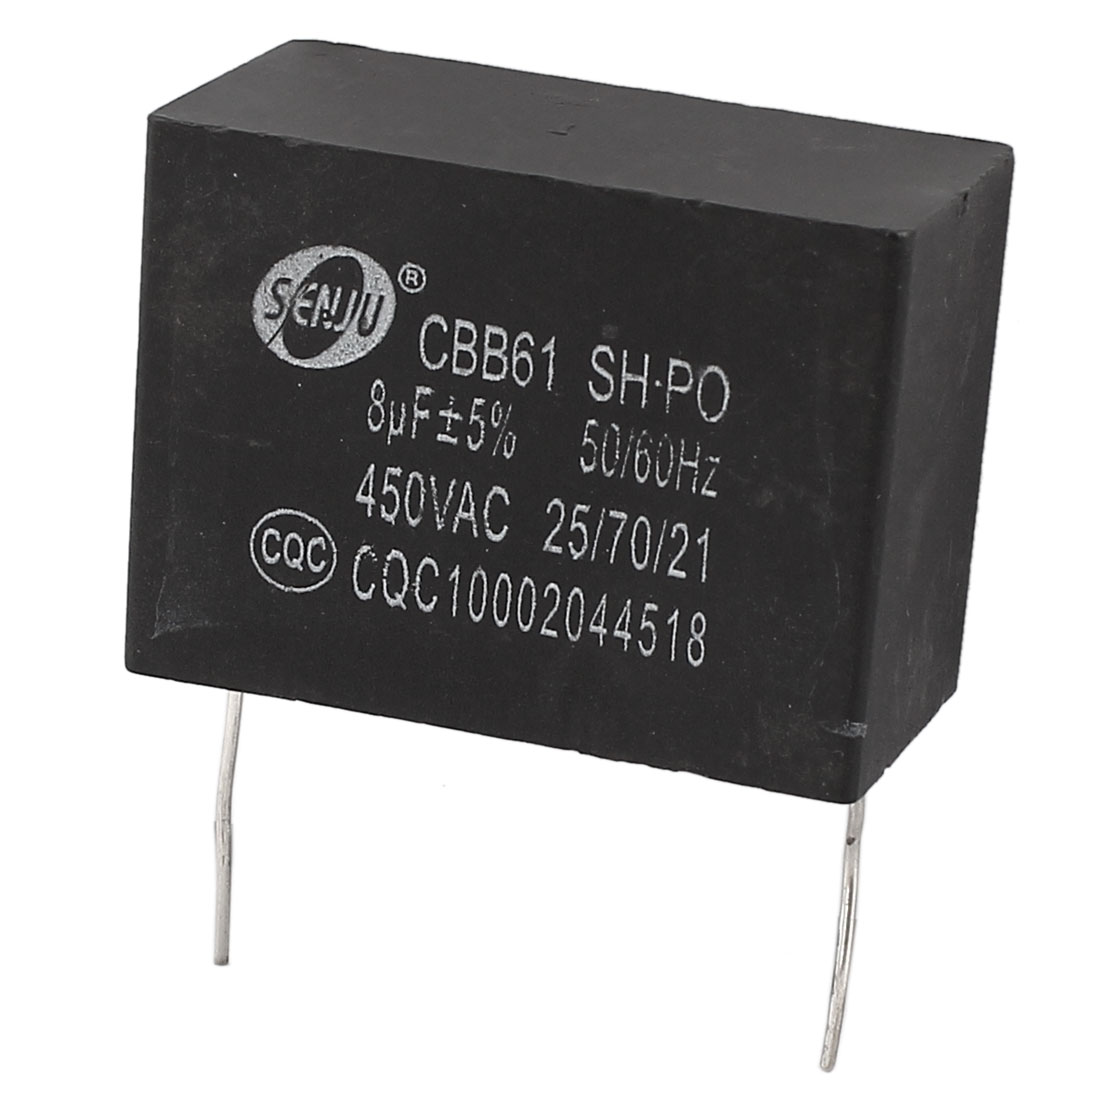 CBB61 AC 450V 8uF 50/60Hz Nonpolar Wired Motor Run Capacitor Black for Fan